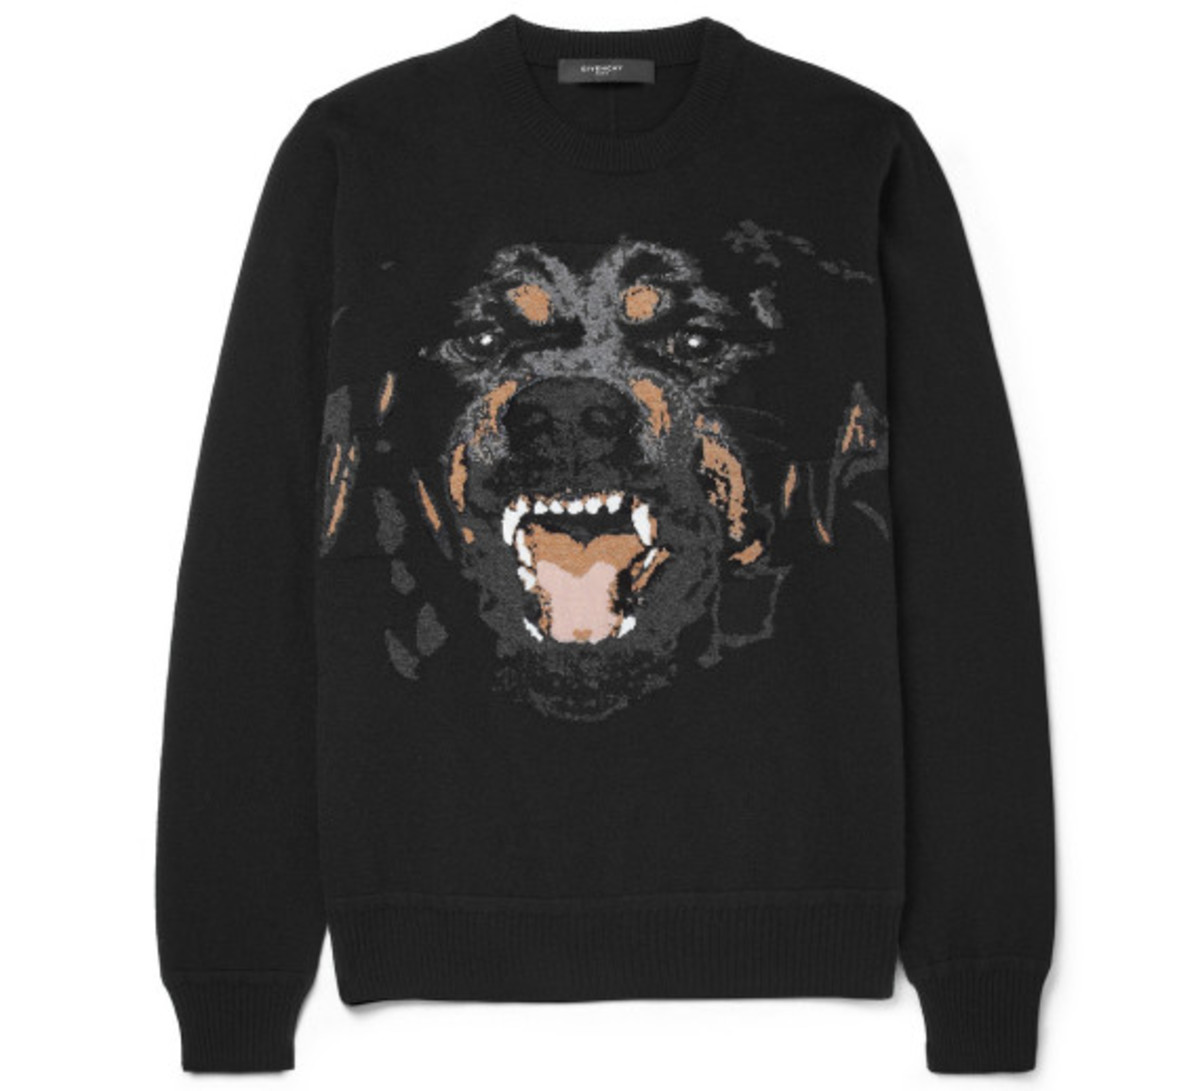 GIVENCHY – Rottweiler Print Cotton Sweatshirt - 0